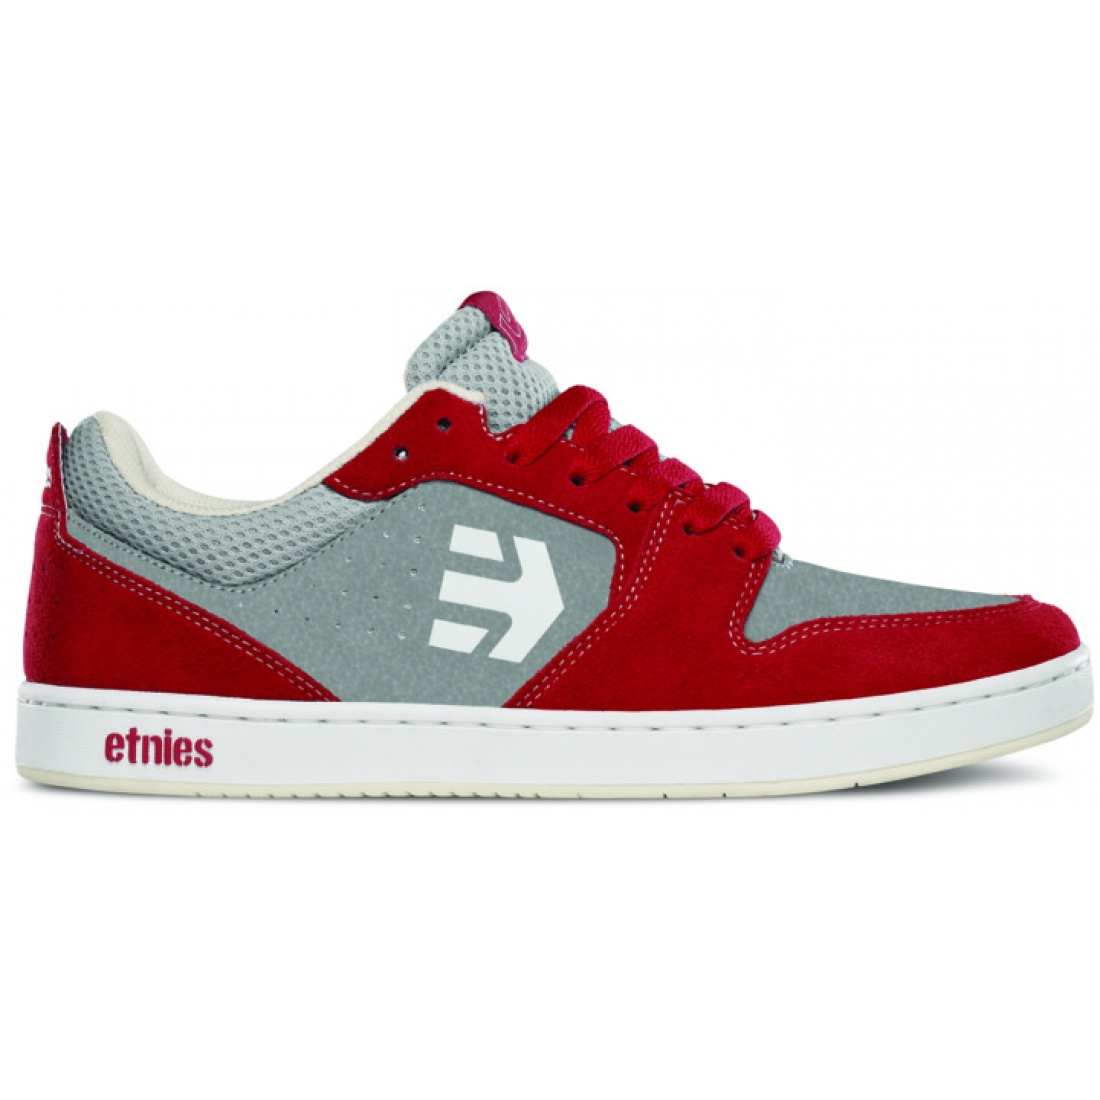 ETN-Verano Red/Grey/White Shoes